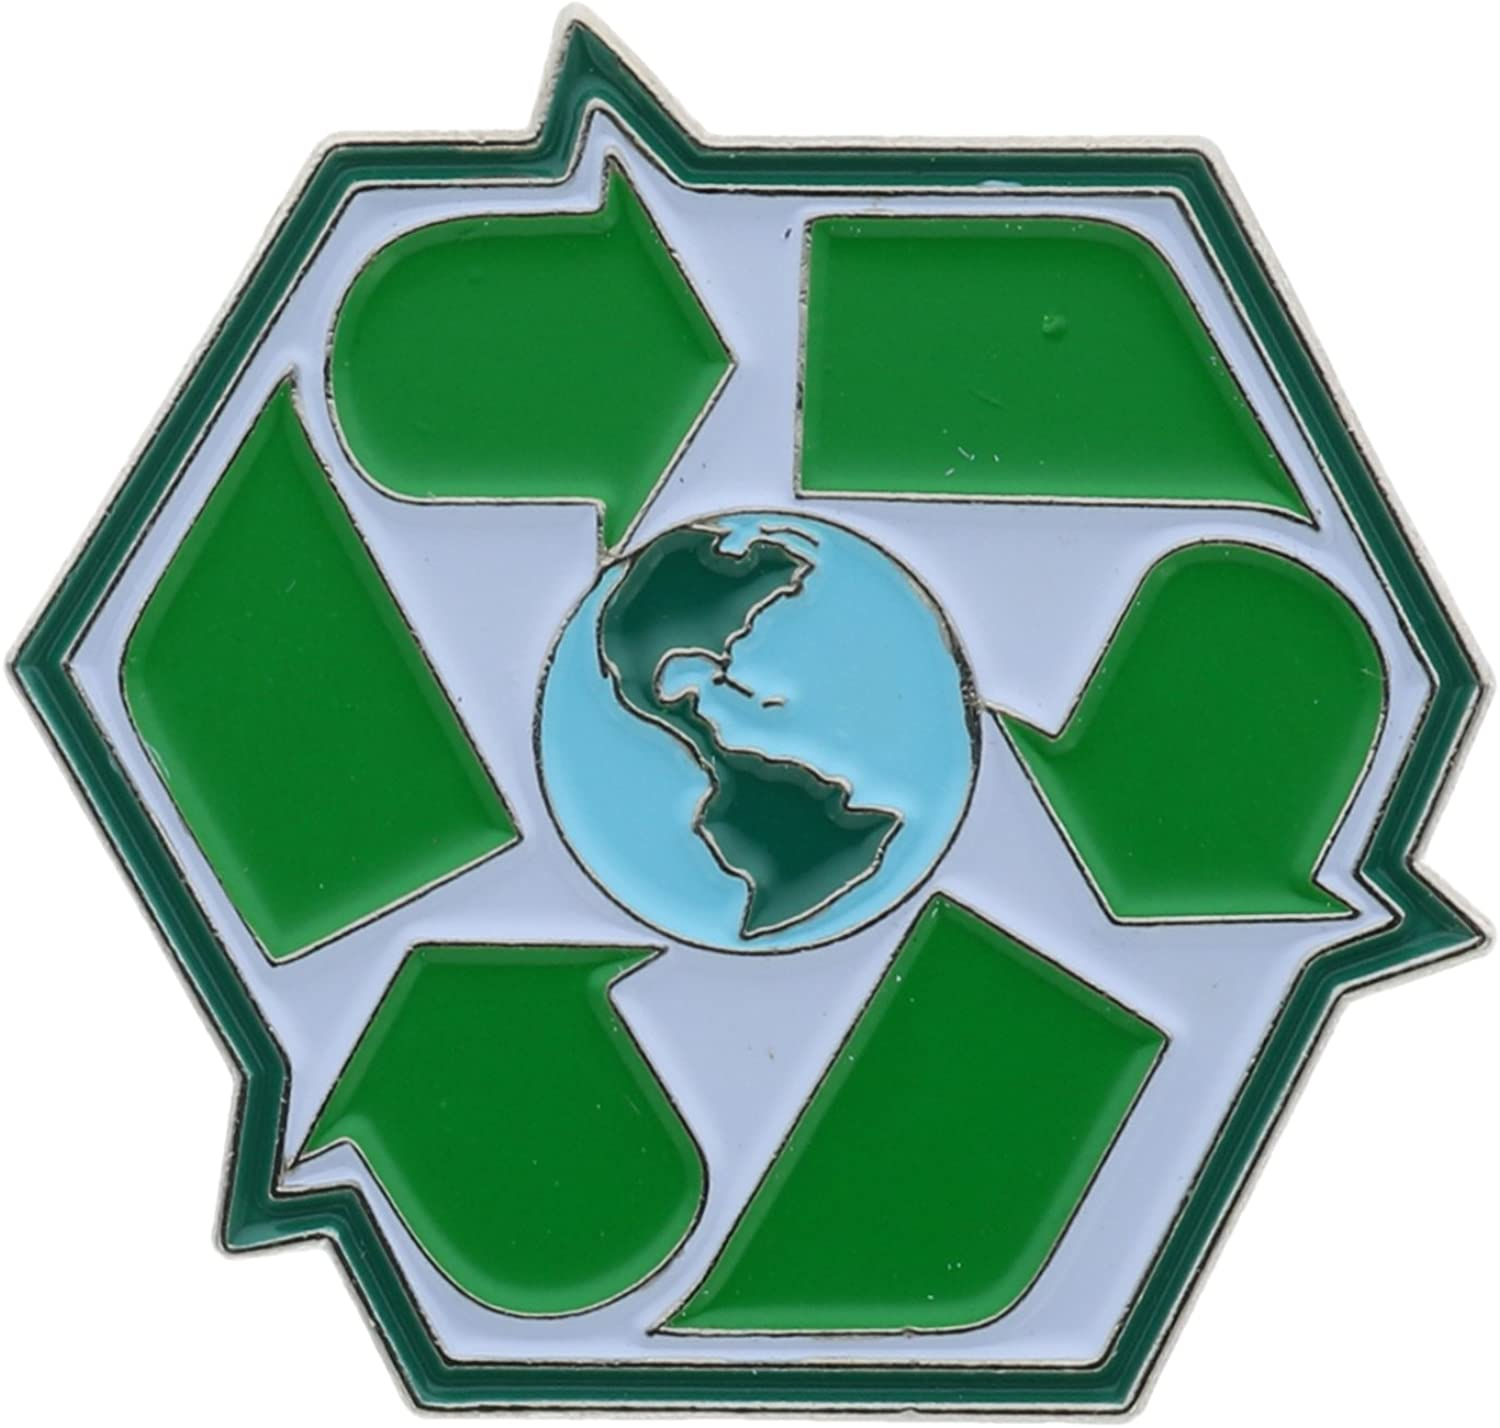 Go green button stock image. Image of background, ecology